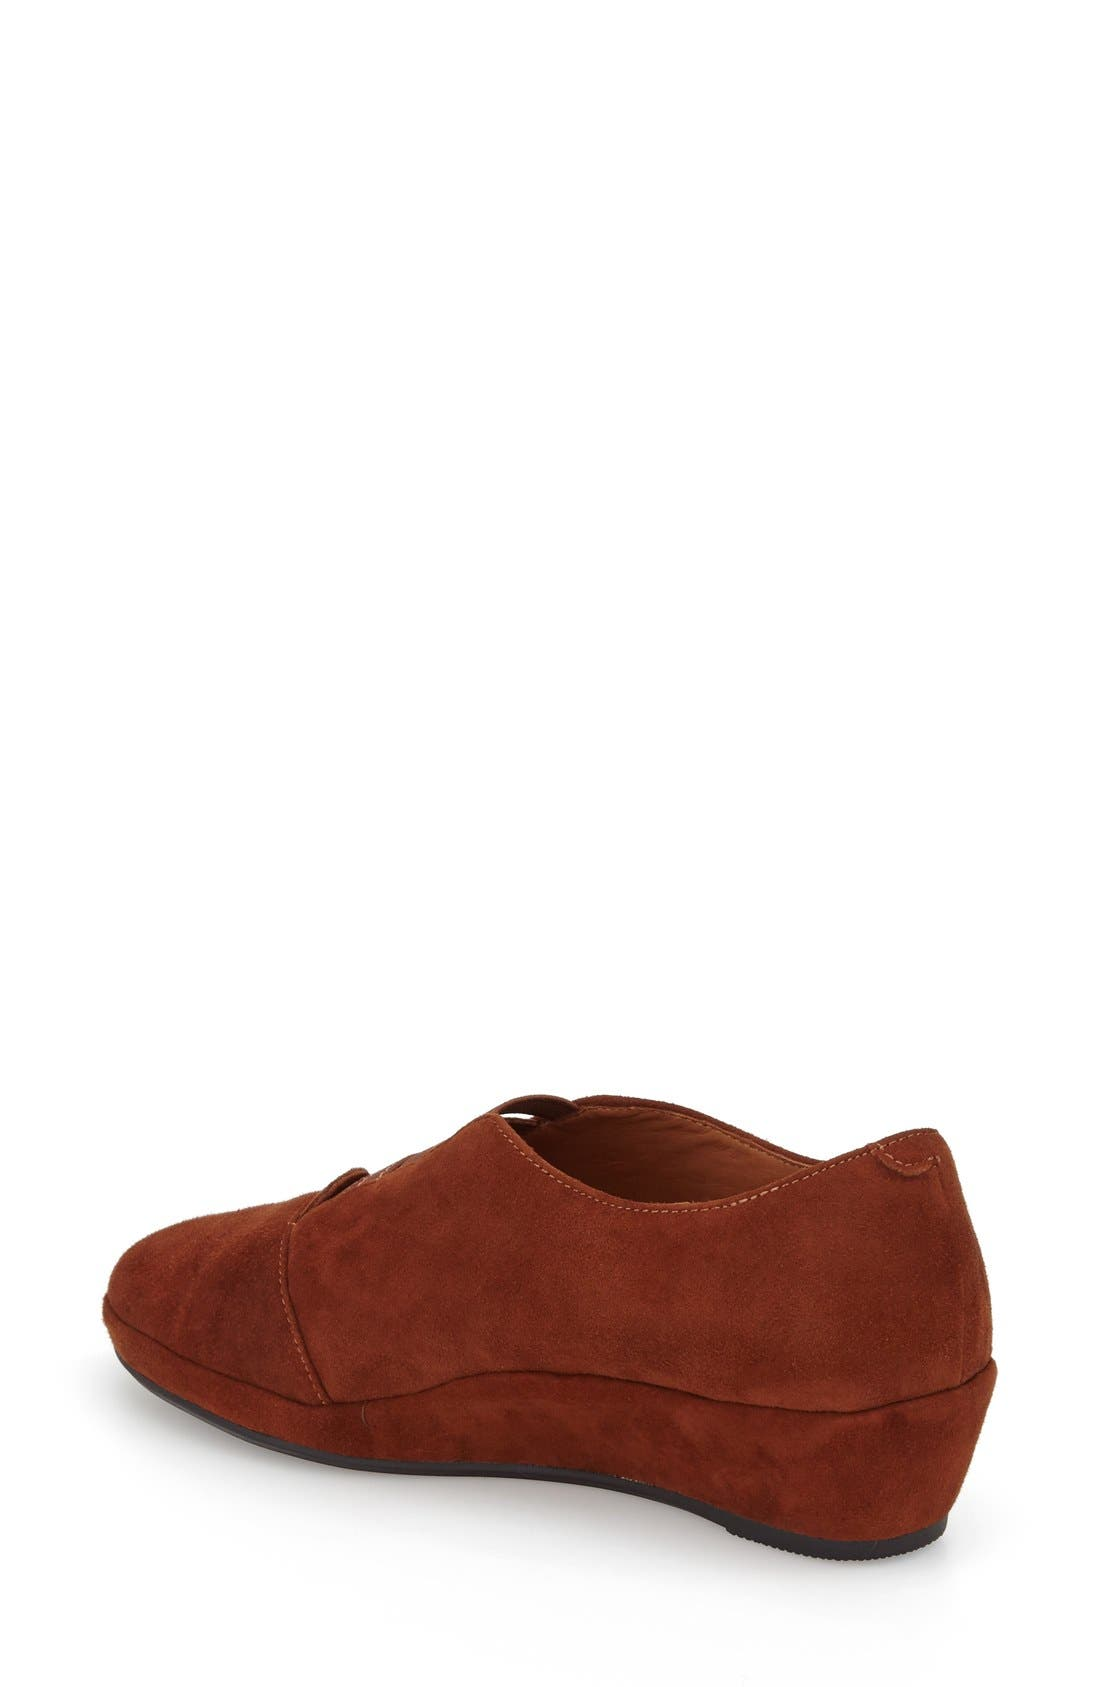 'Beziers' Slip-On,                             Alternate thumbnail 2, color,                             BRANDY SUEDE LEATHER